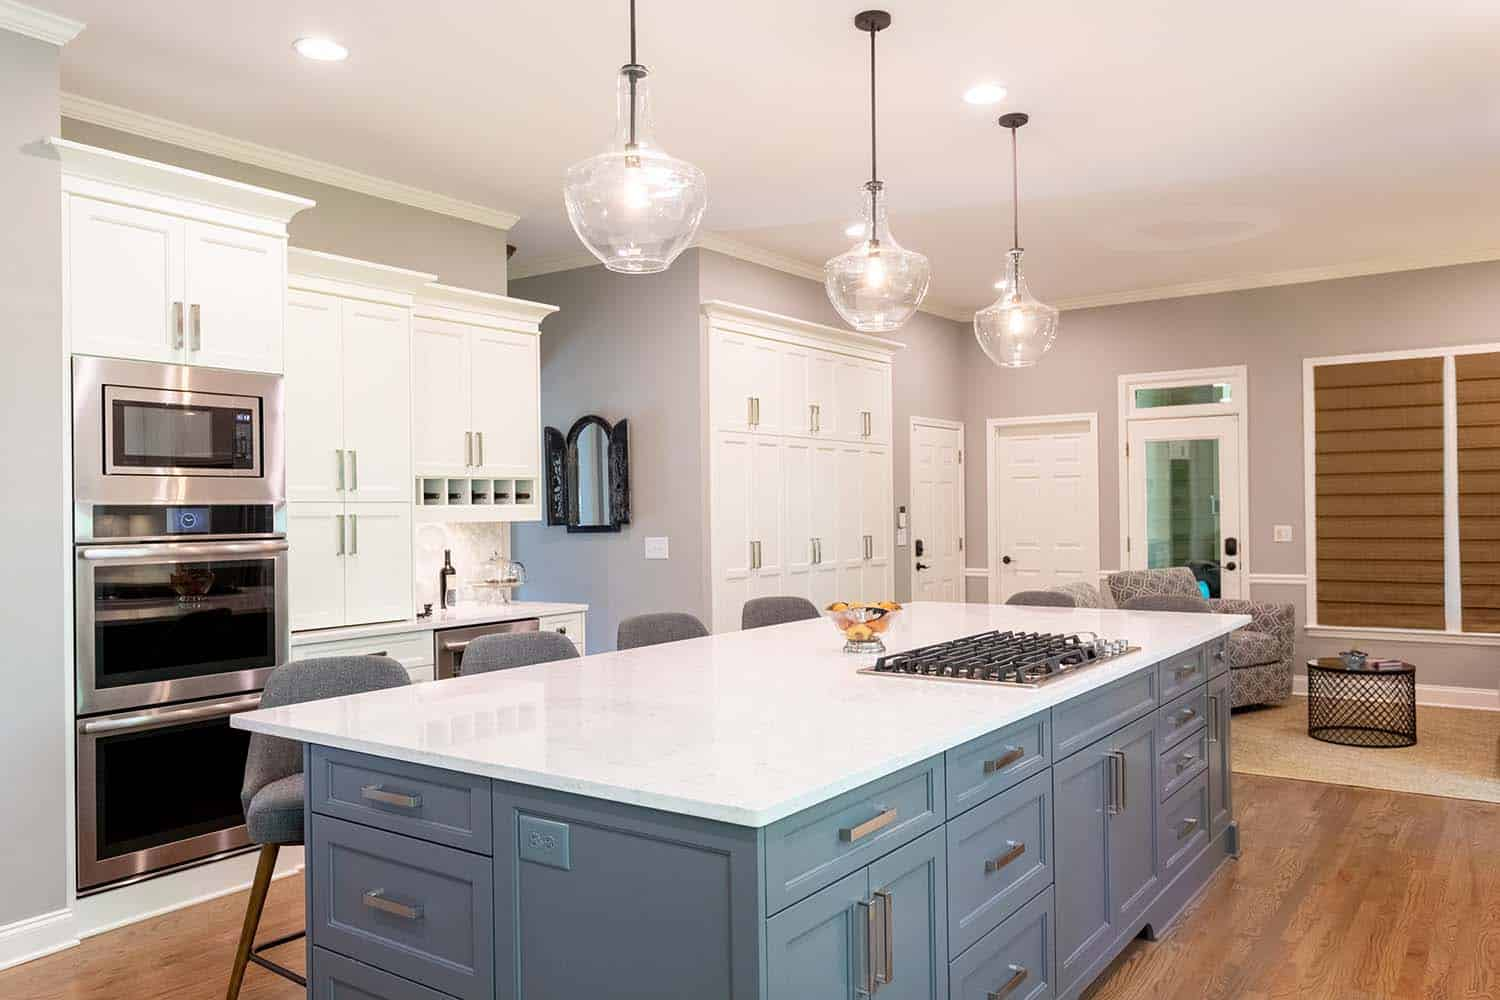 Kiewit Project - Victoria Renovations - Home Remodeling and